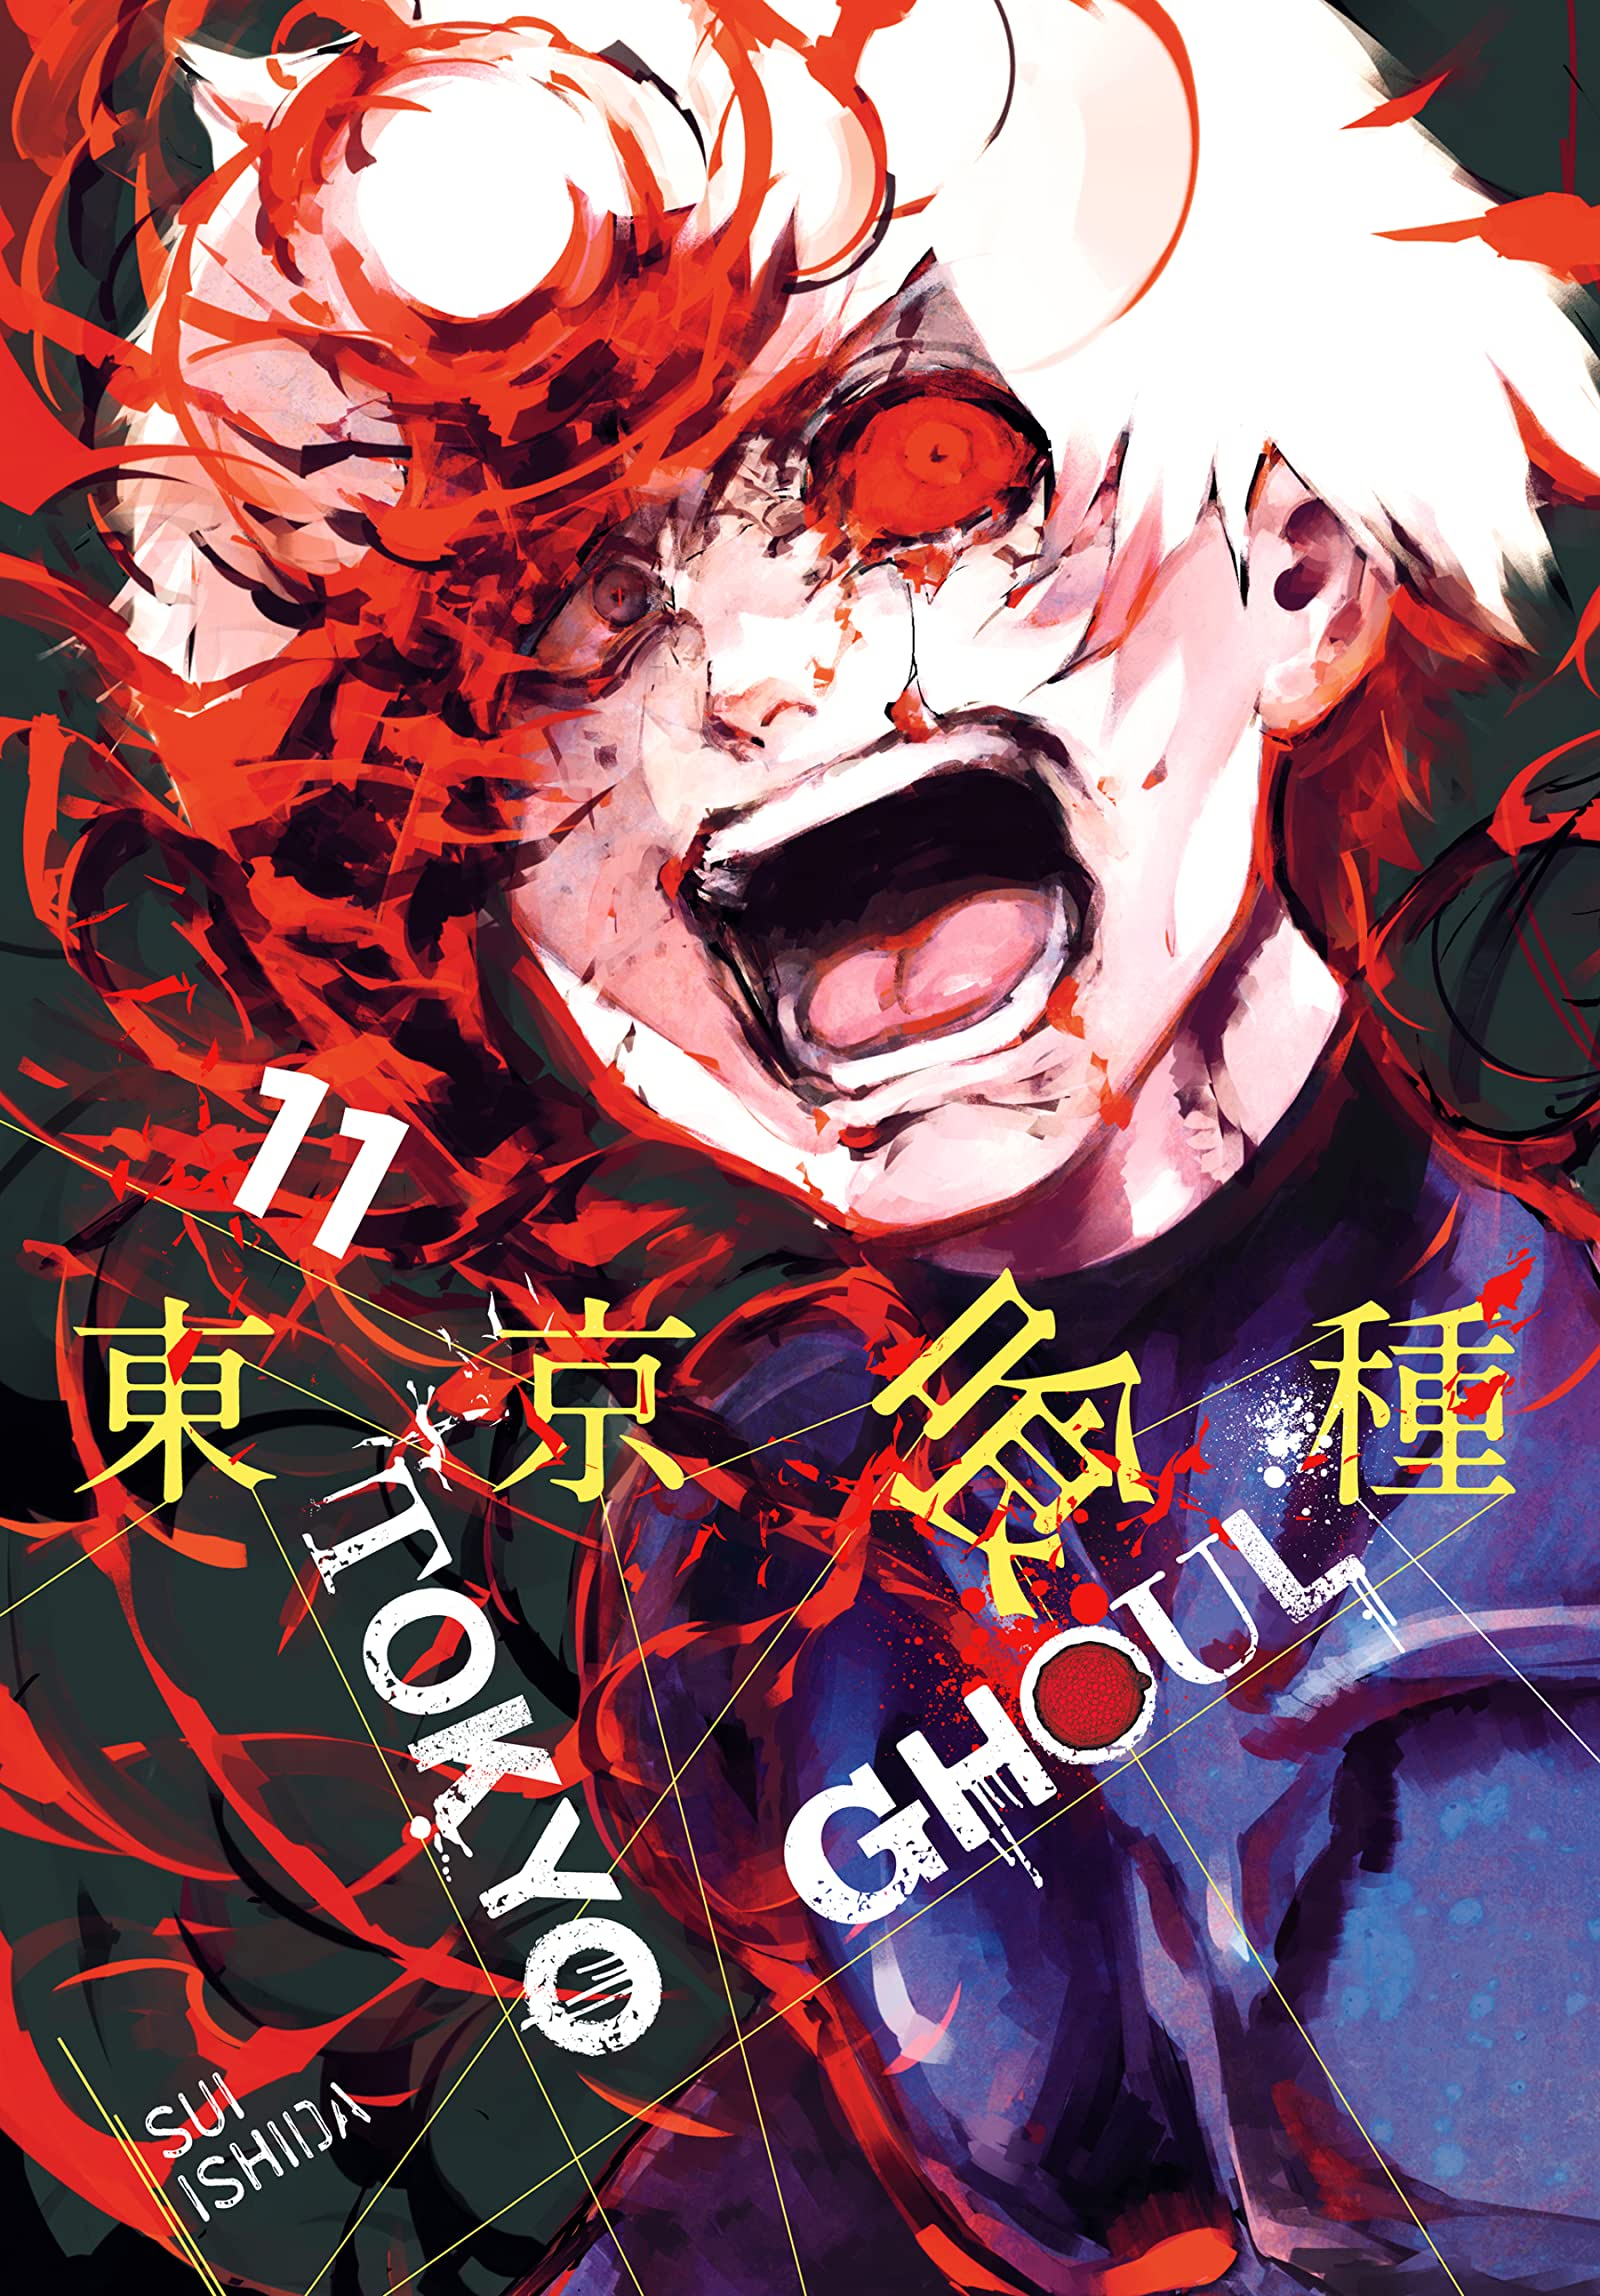 Tokyo Ghoul Vol  11 - Comics by comiXology